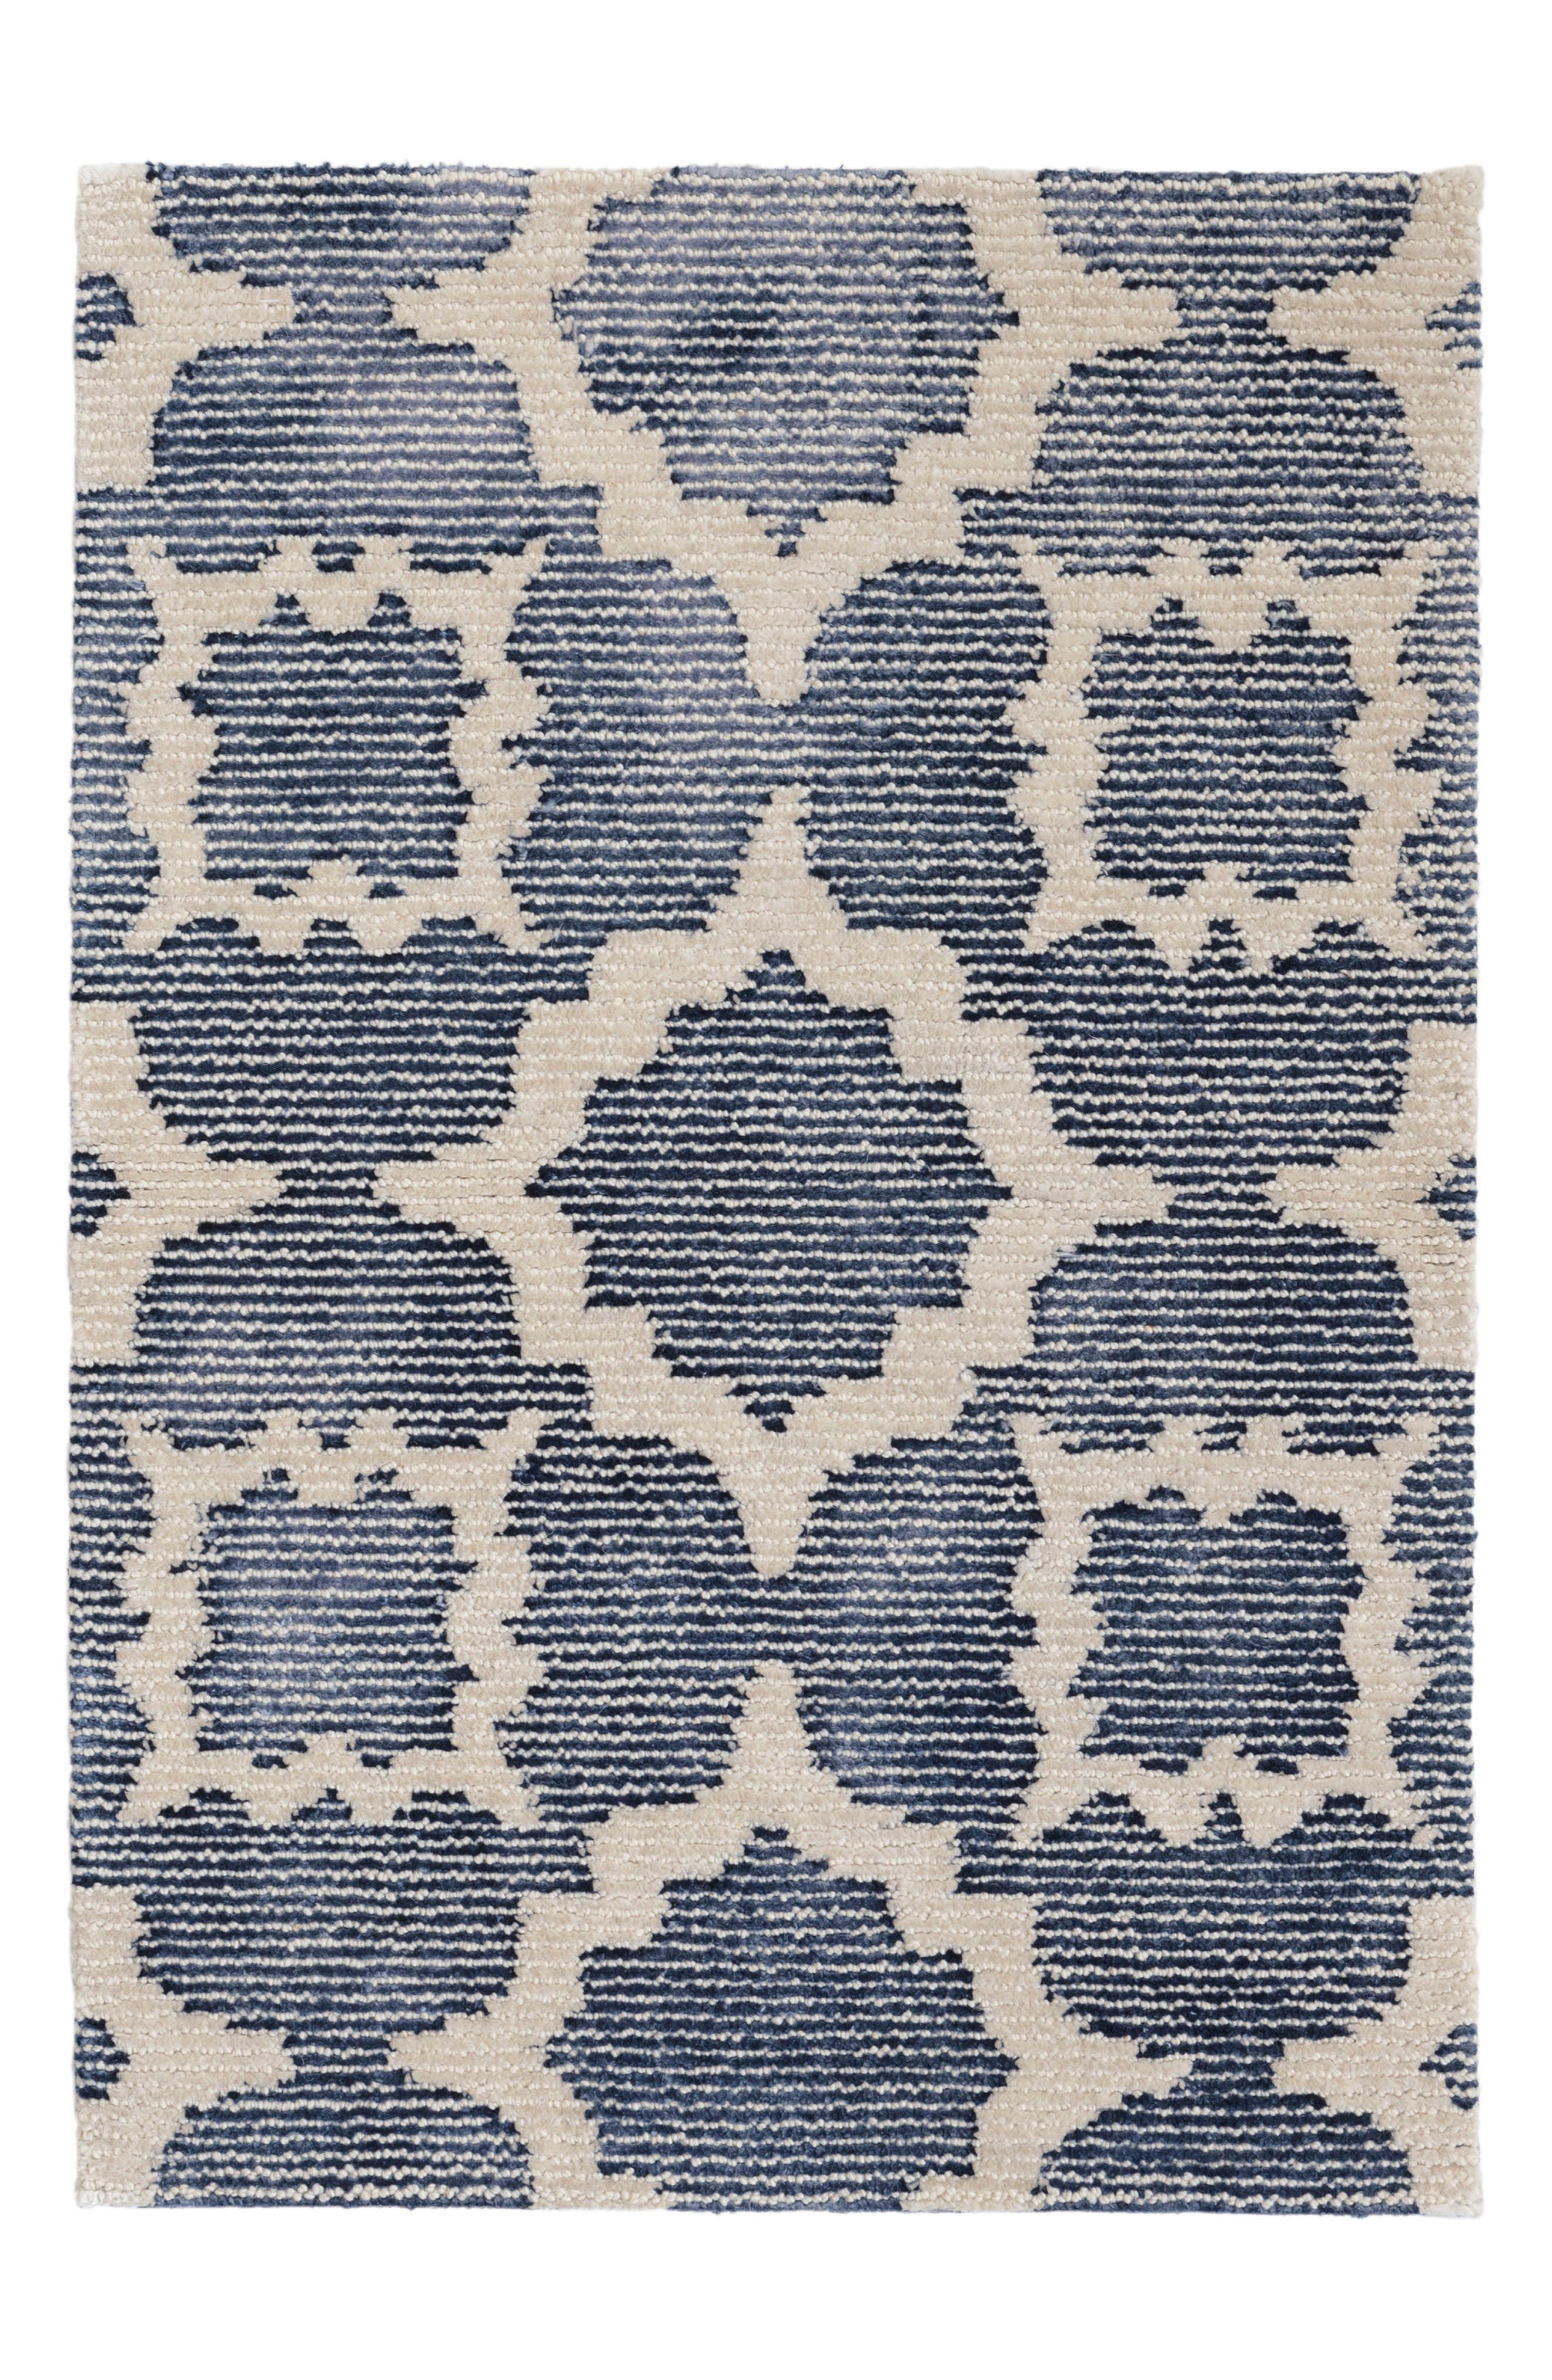 China Hand Knotted Wool Blend Rug,                         Main,                         color, 400